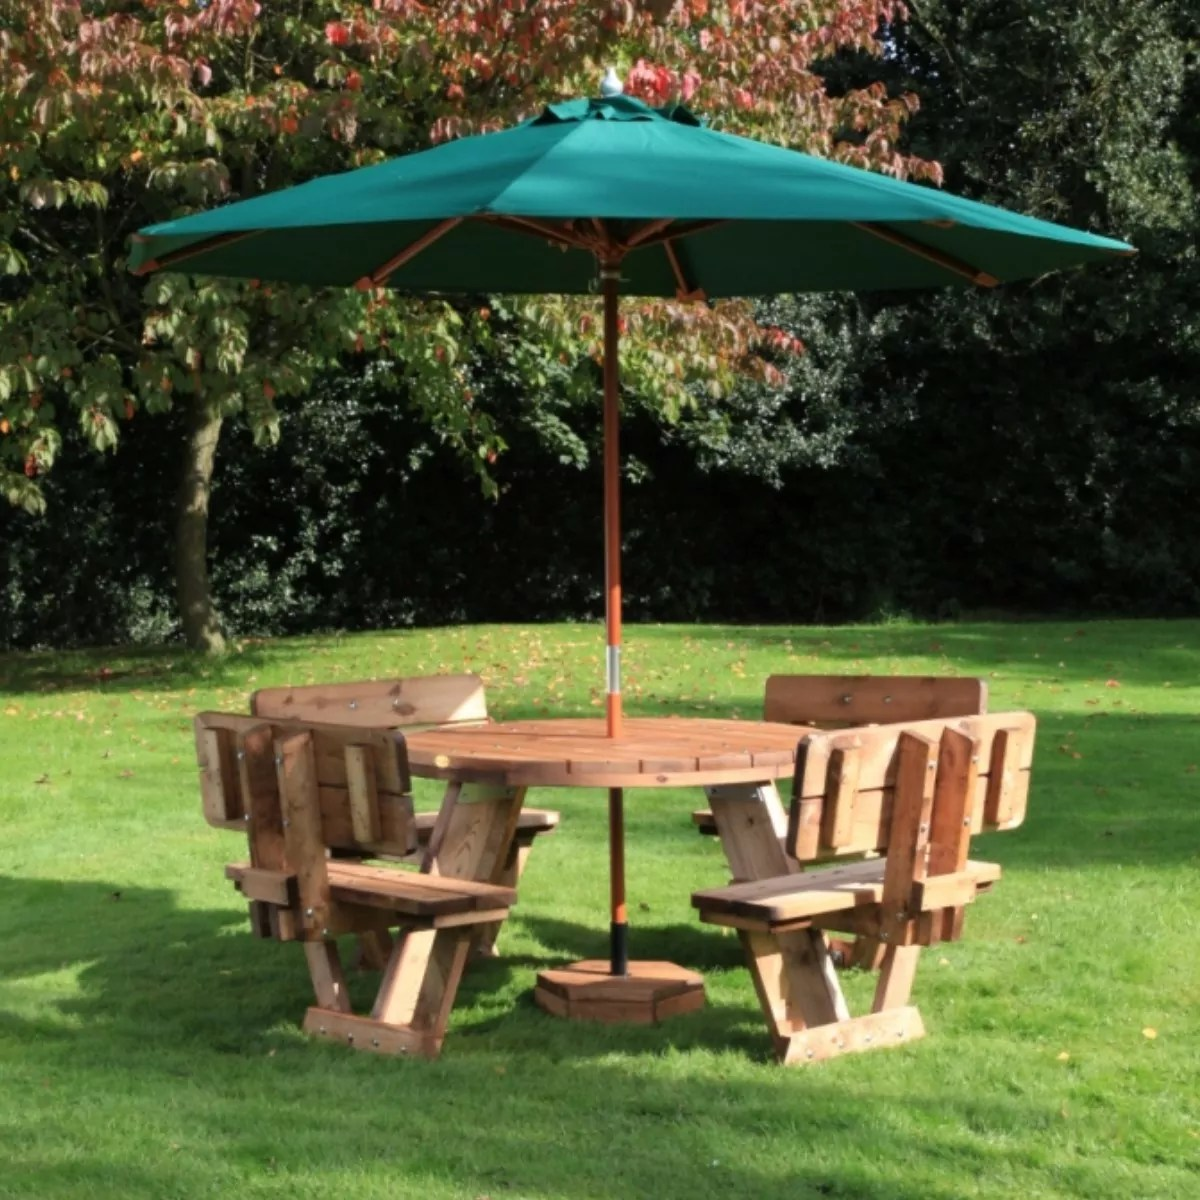 circular 8 seater wooden picnic table with backrests